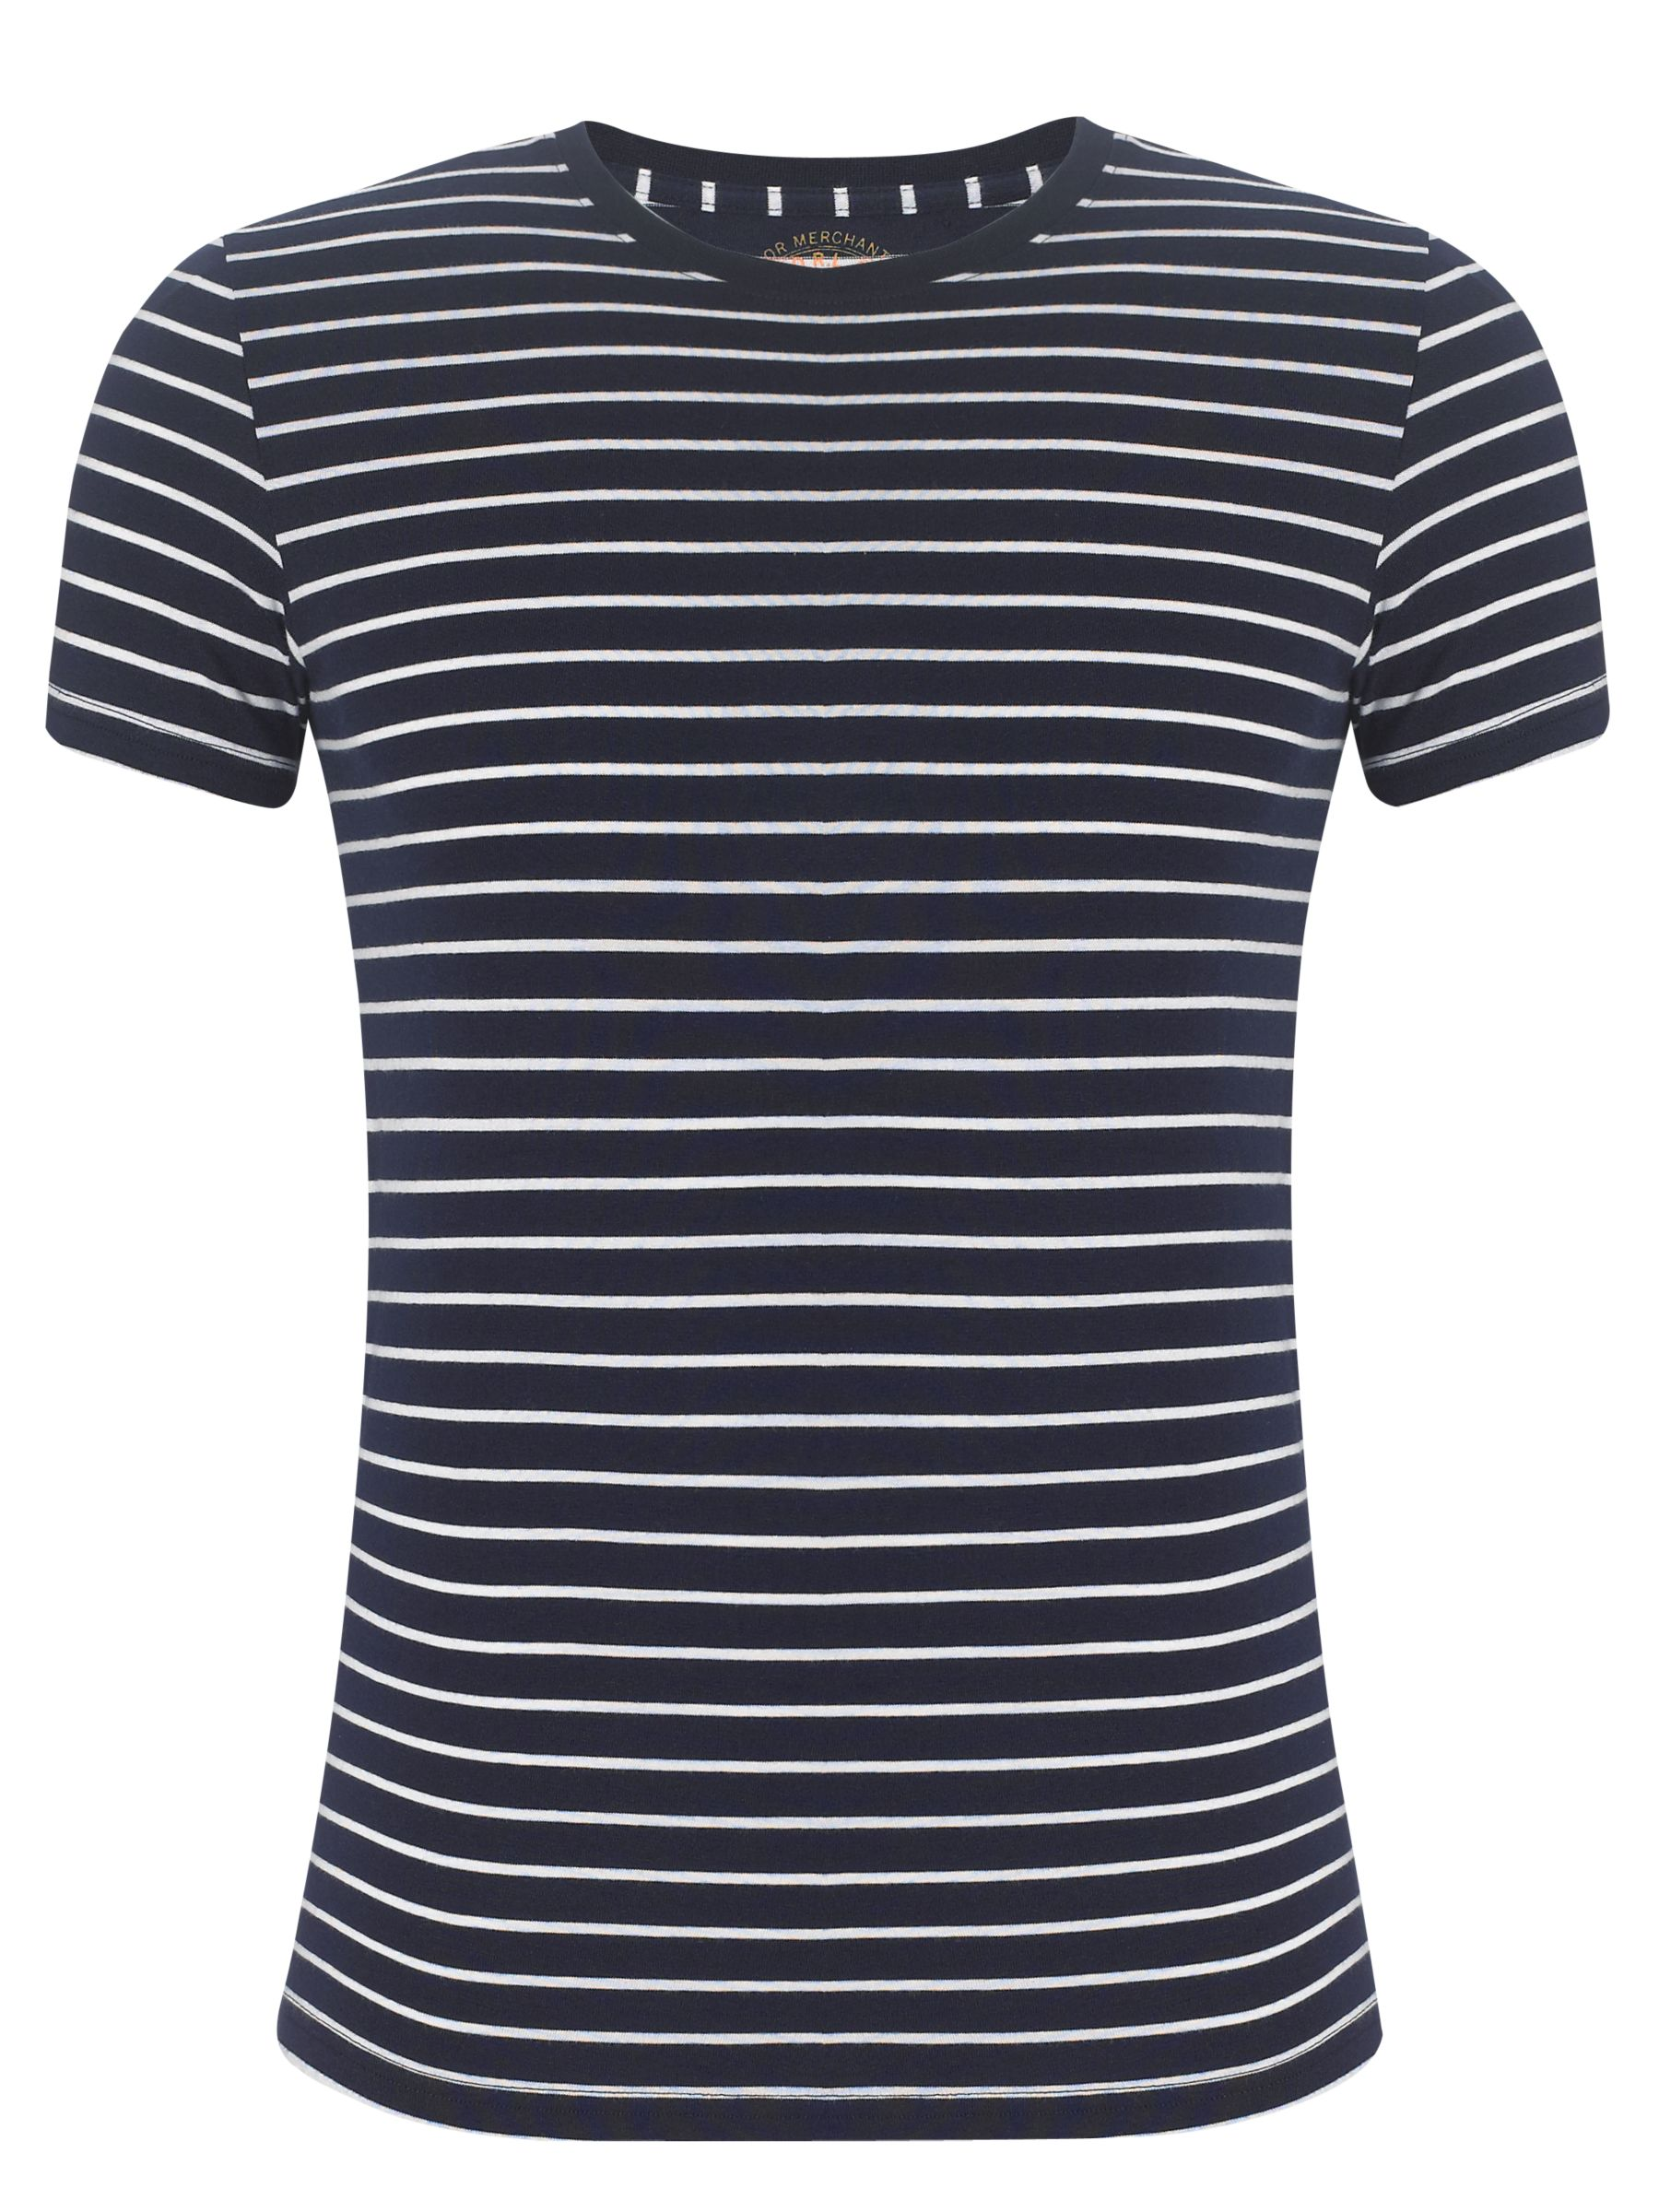 Polo Ralph Lauren Stripe Short Sleeve T-Shirt, Navy/white